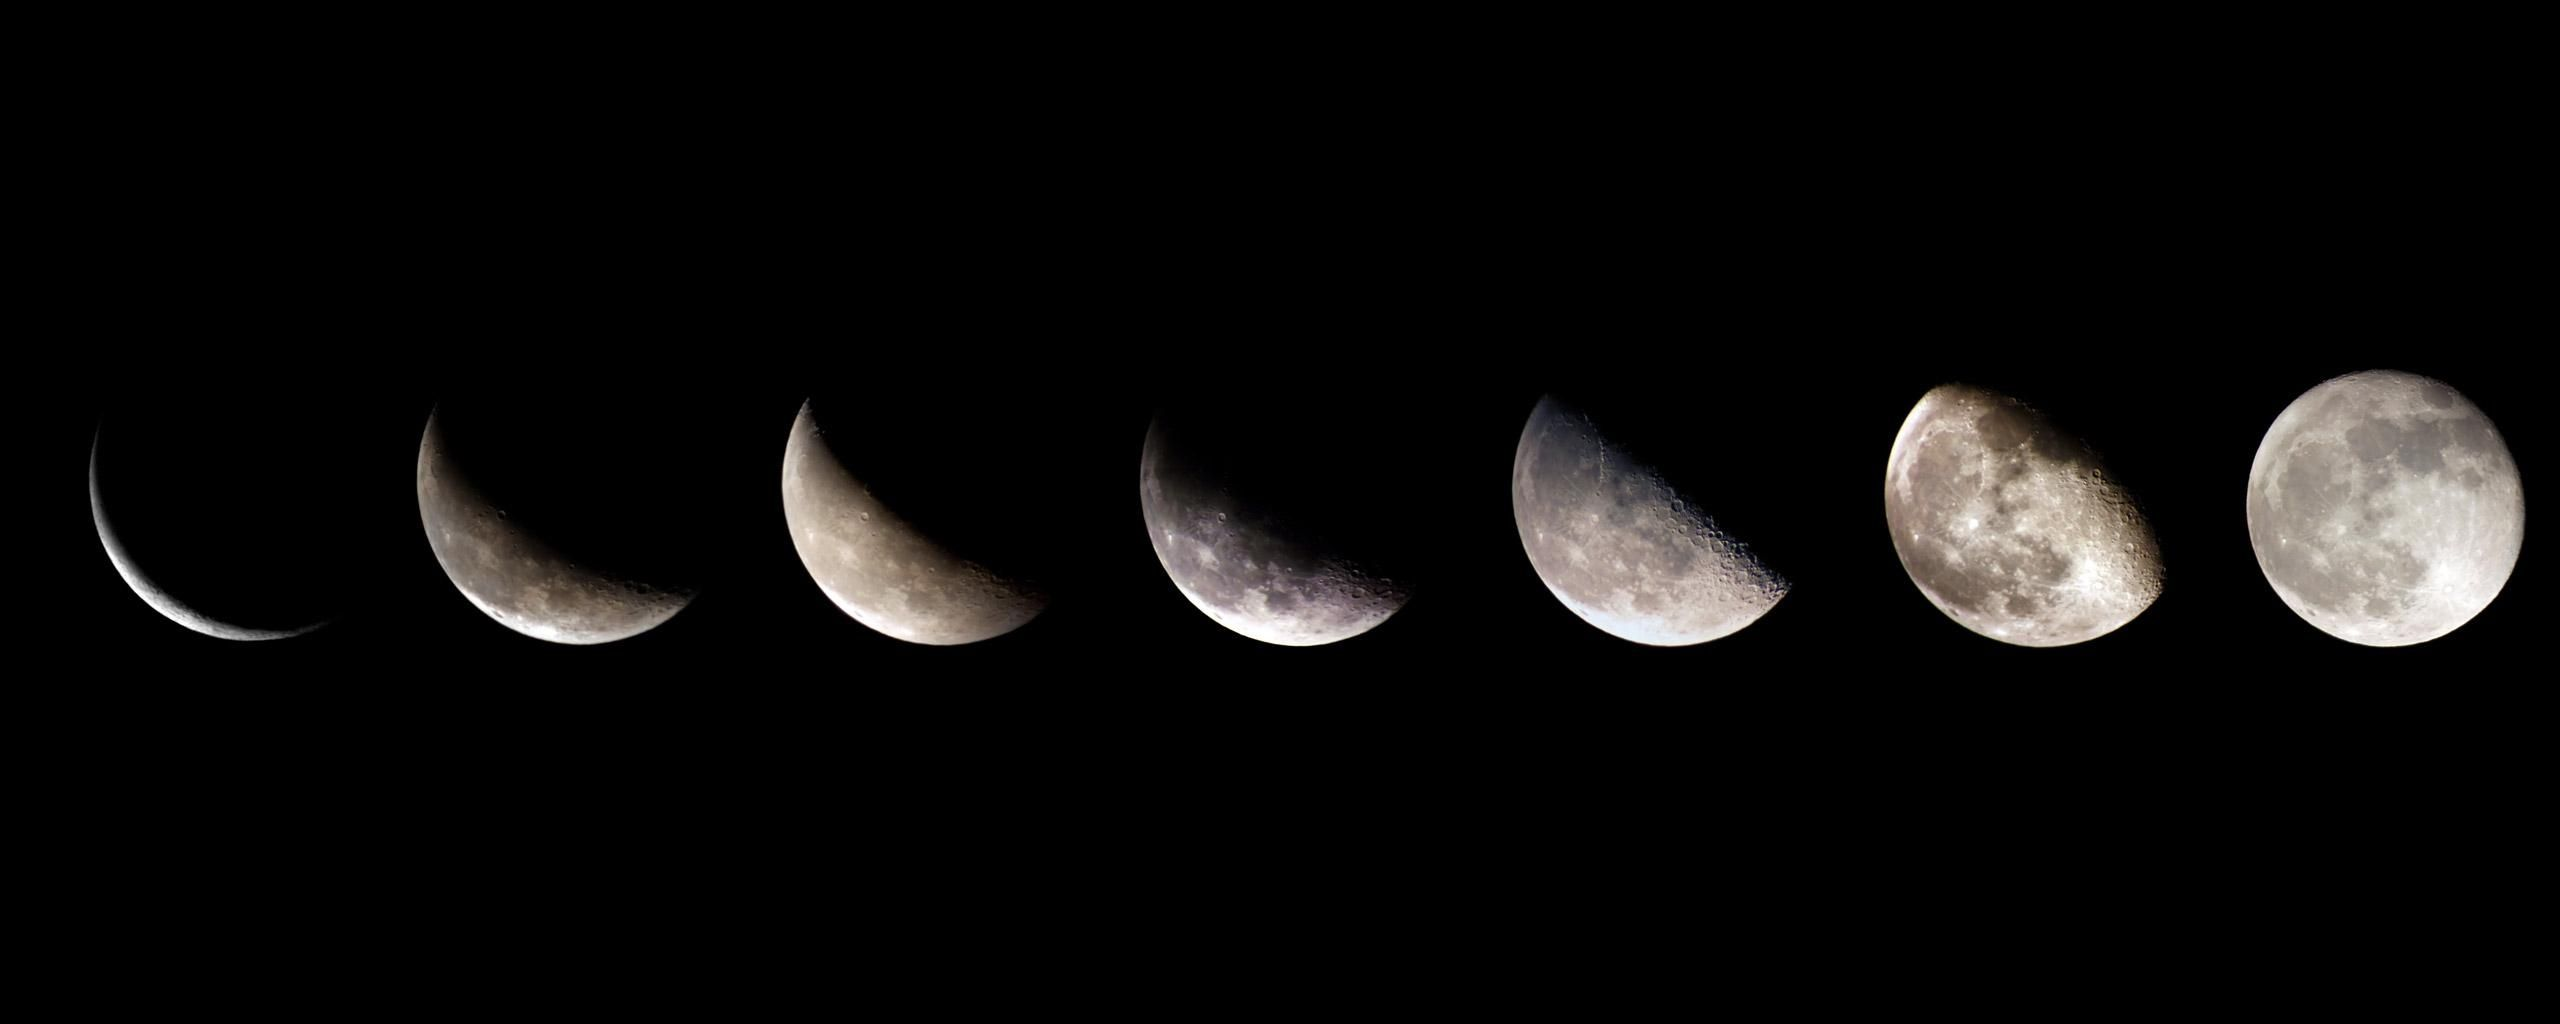 Moon Phases Wallpapers on WallpaperDog